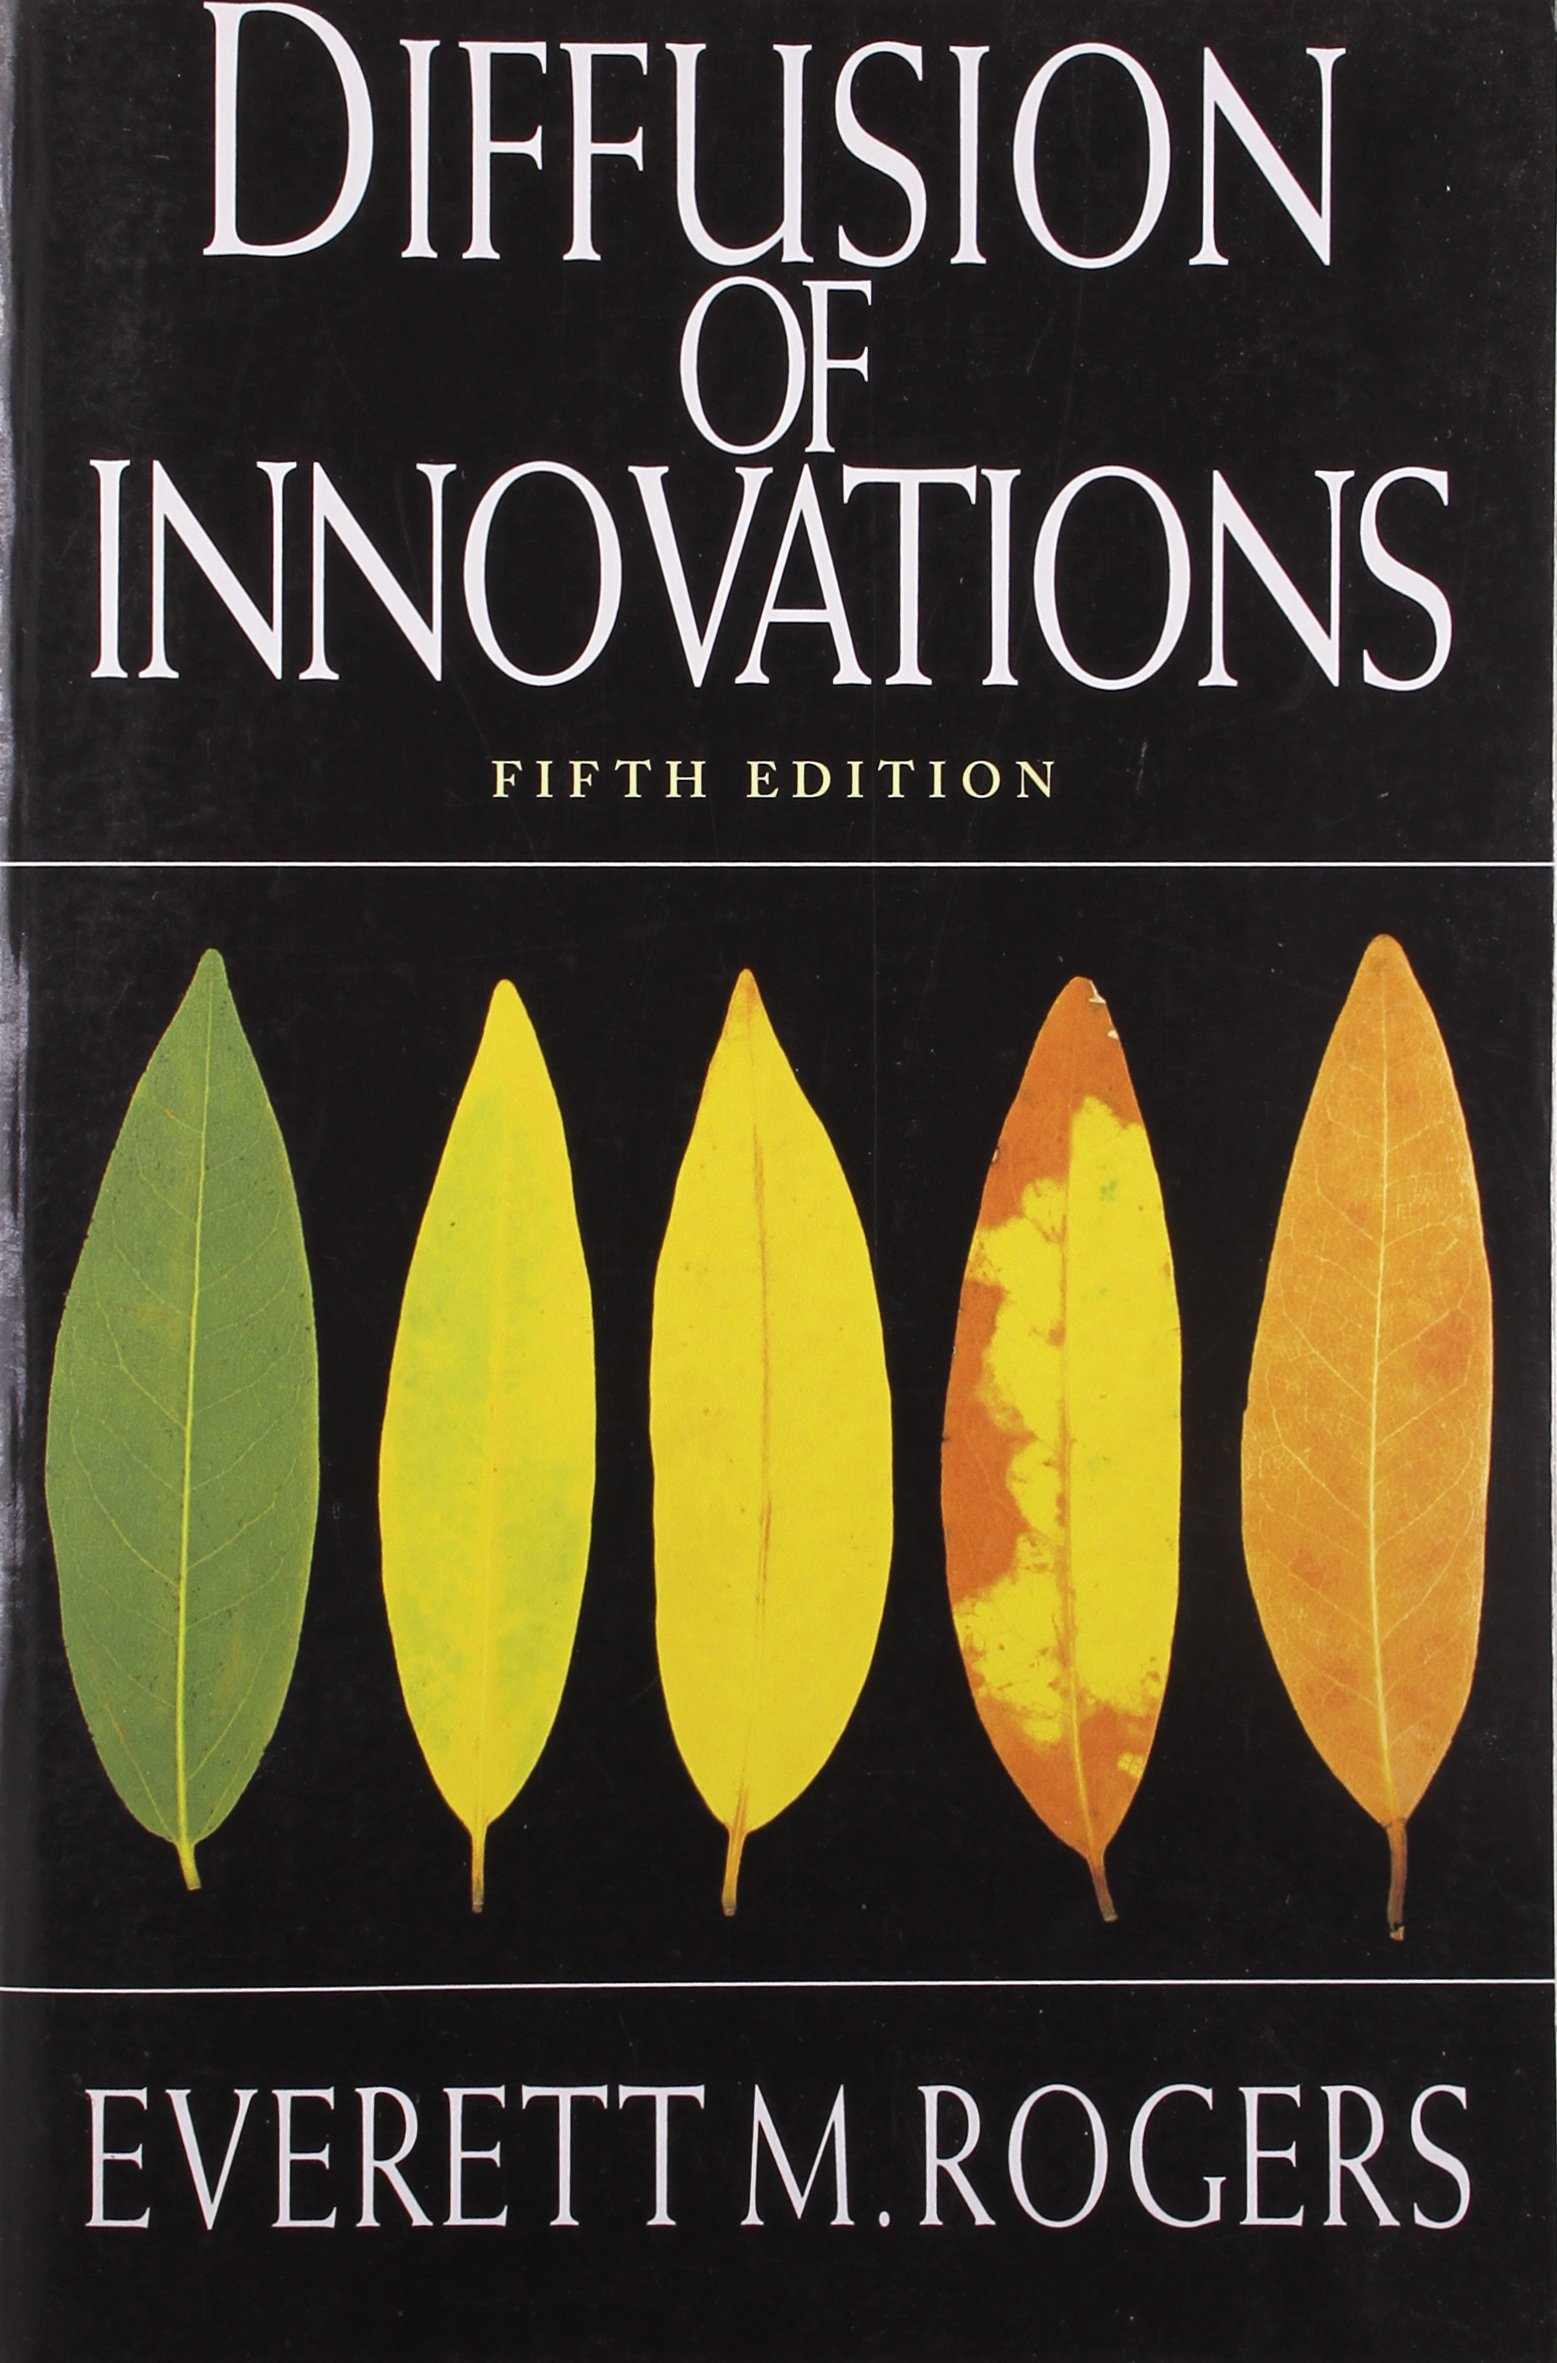 Diffusion of Innovations, 5th Edition: Amazon.es: Rogers, Everett ...